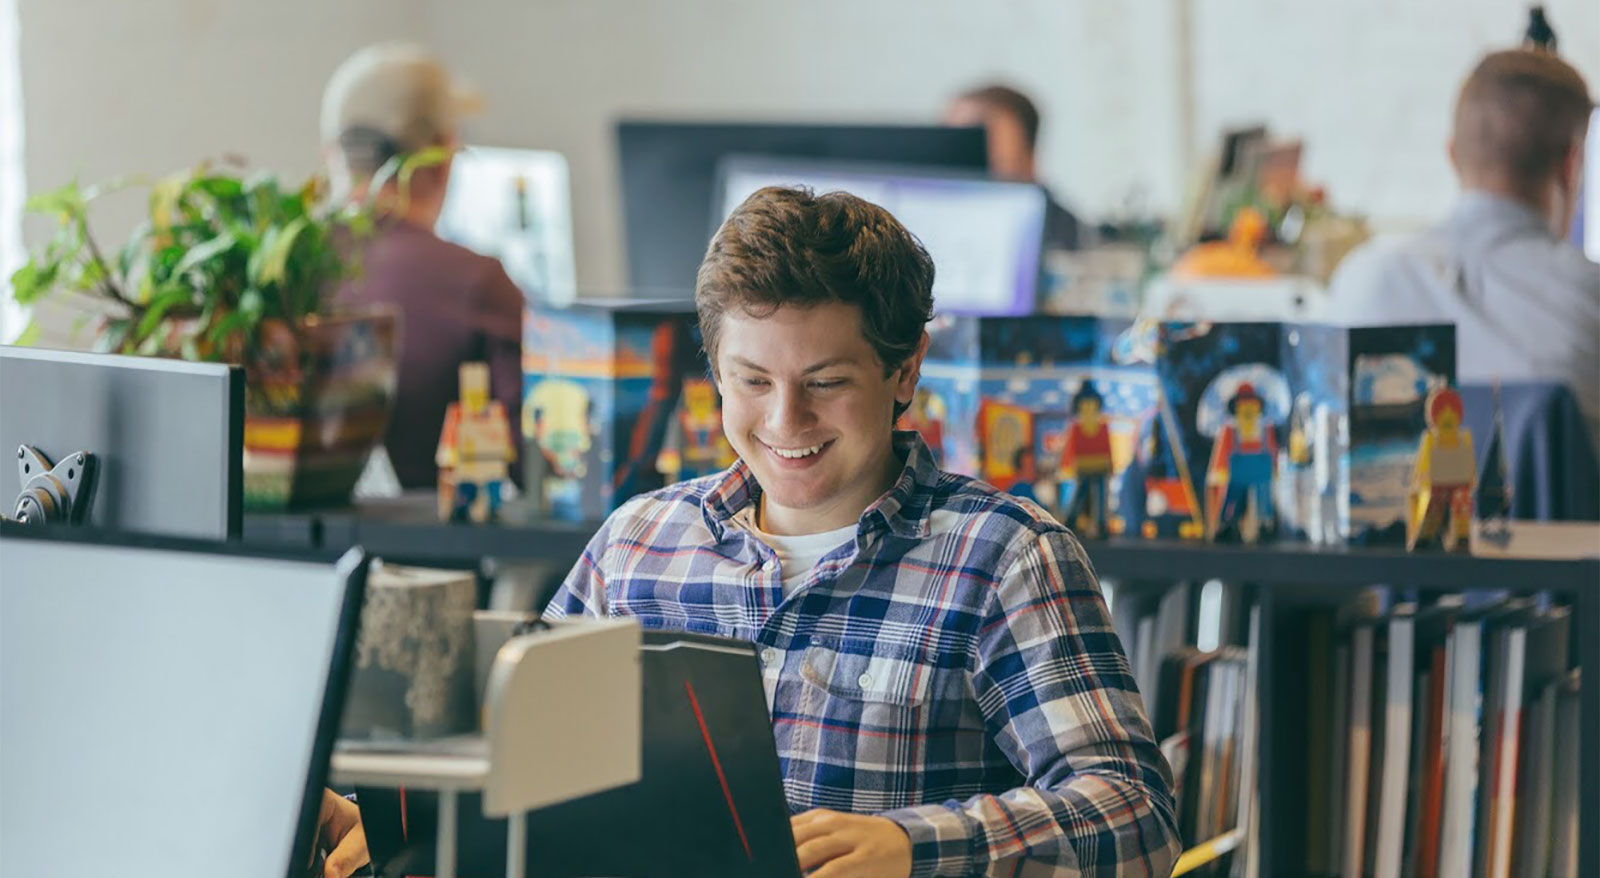 Intern smiling while looking at computer in office setting